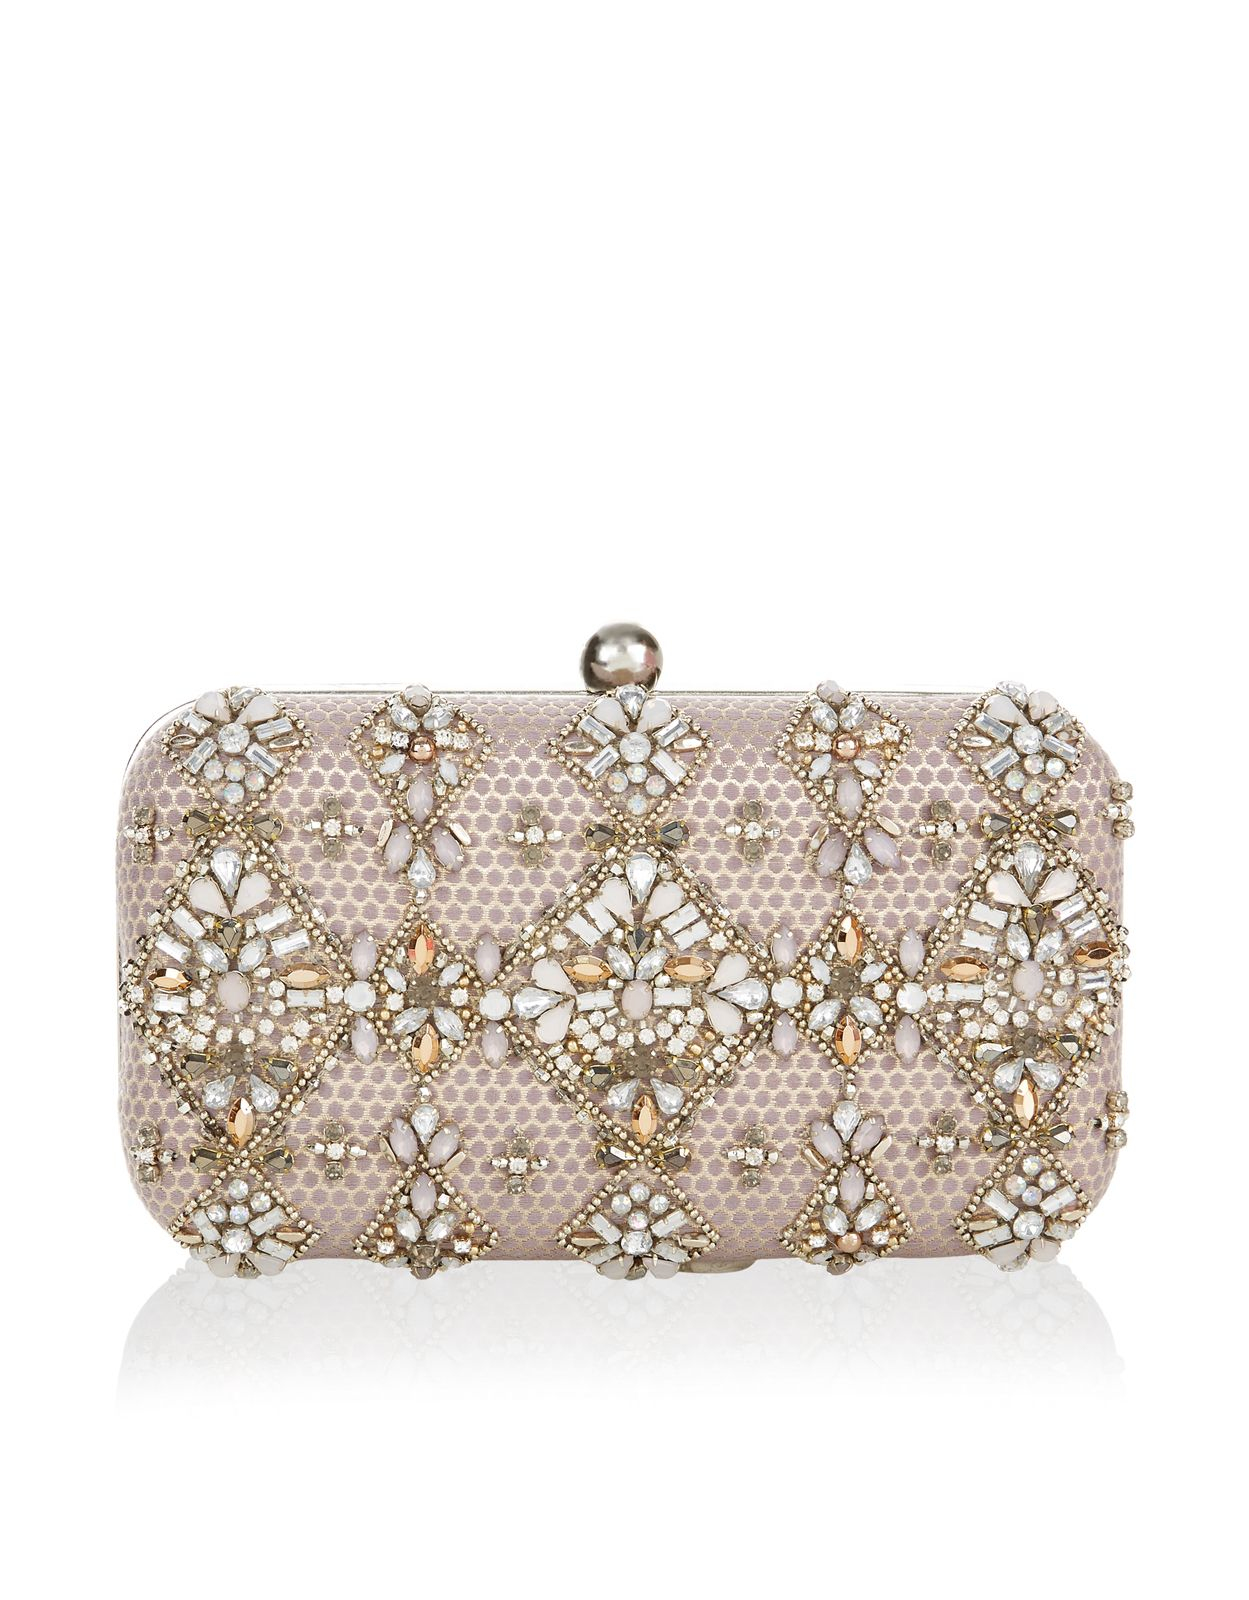 6086db29f3 Our beautifully ornate Elsa embellished hard-case clutch bag is decorated  with…